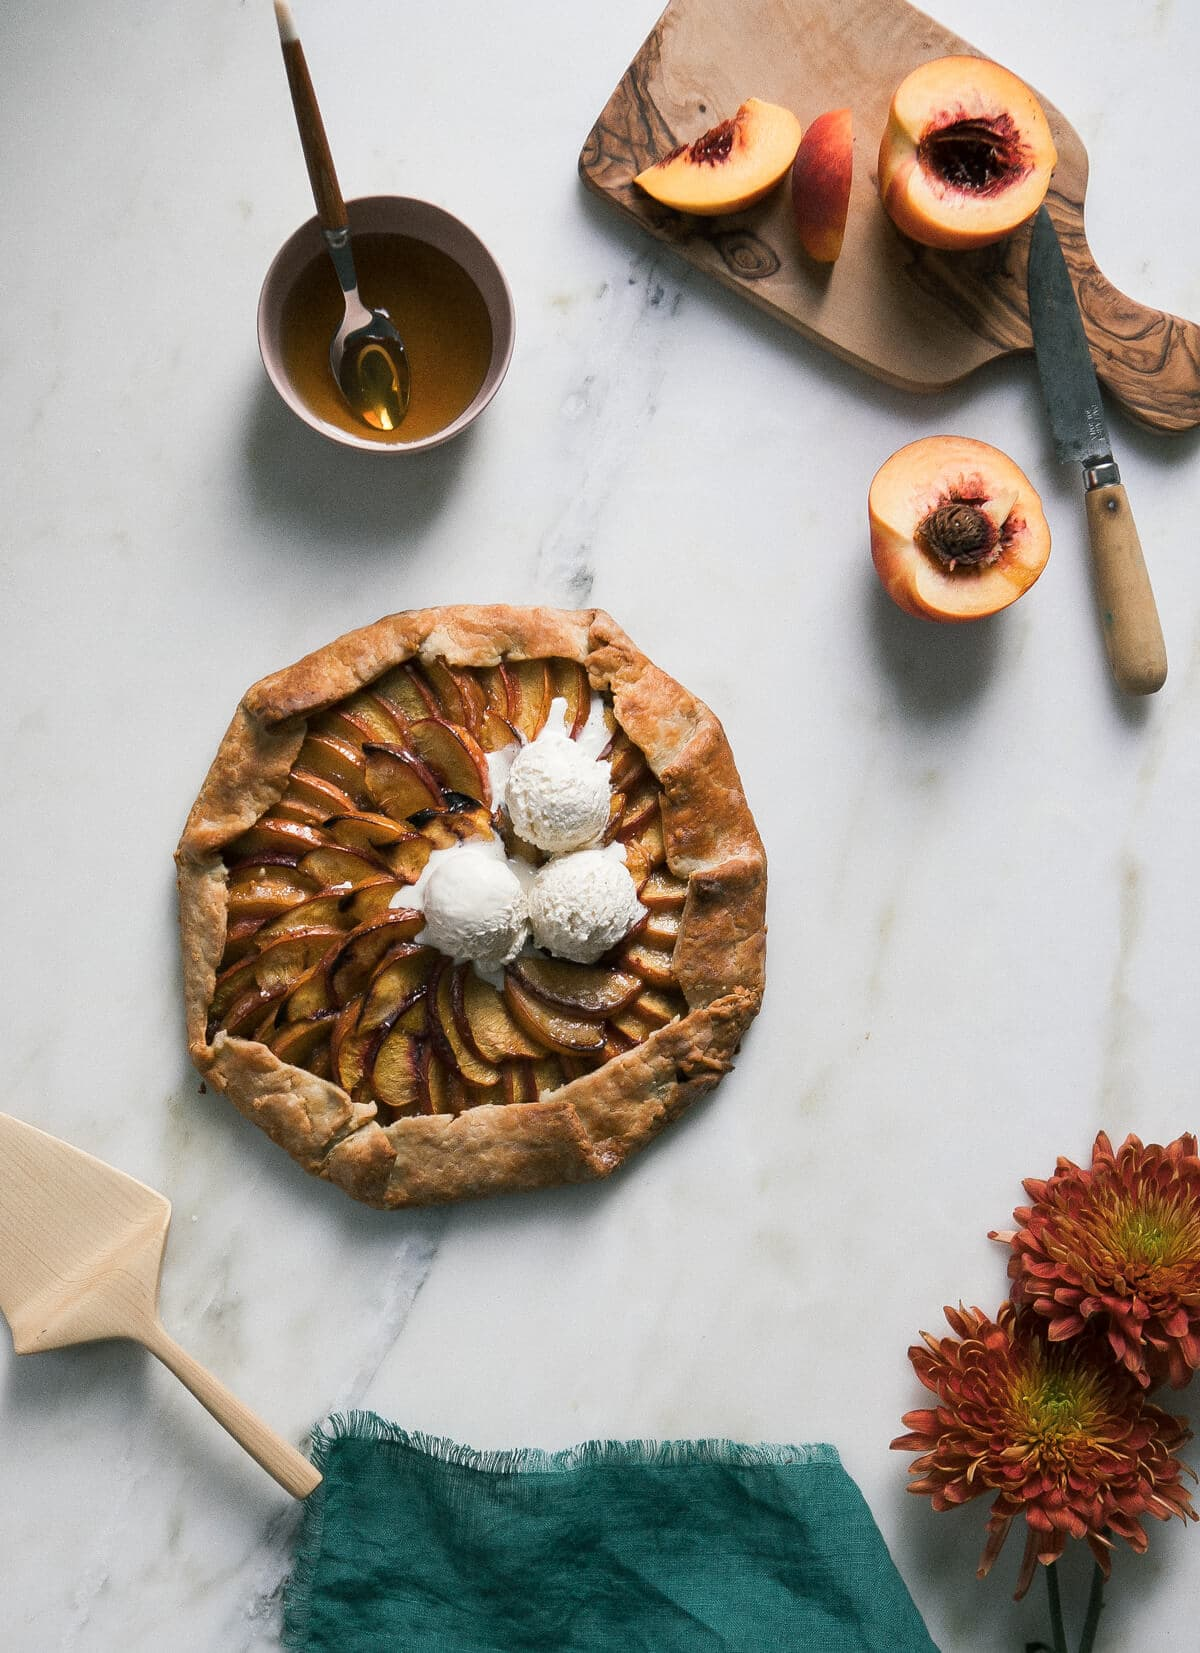 Peach Galette with Baklava Filling